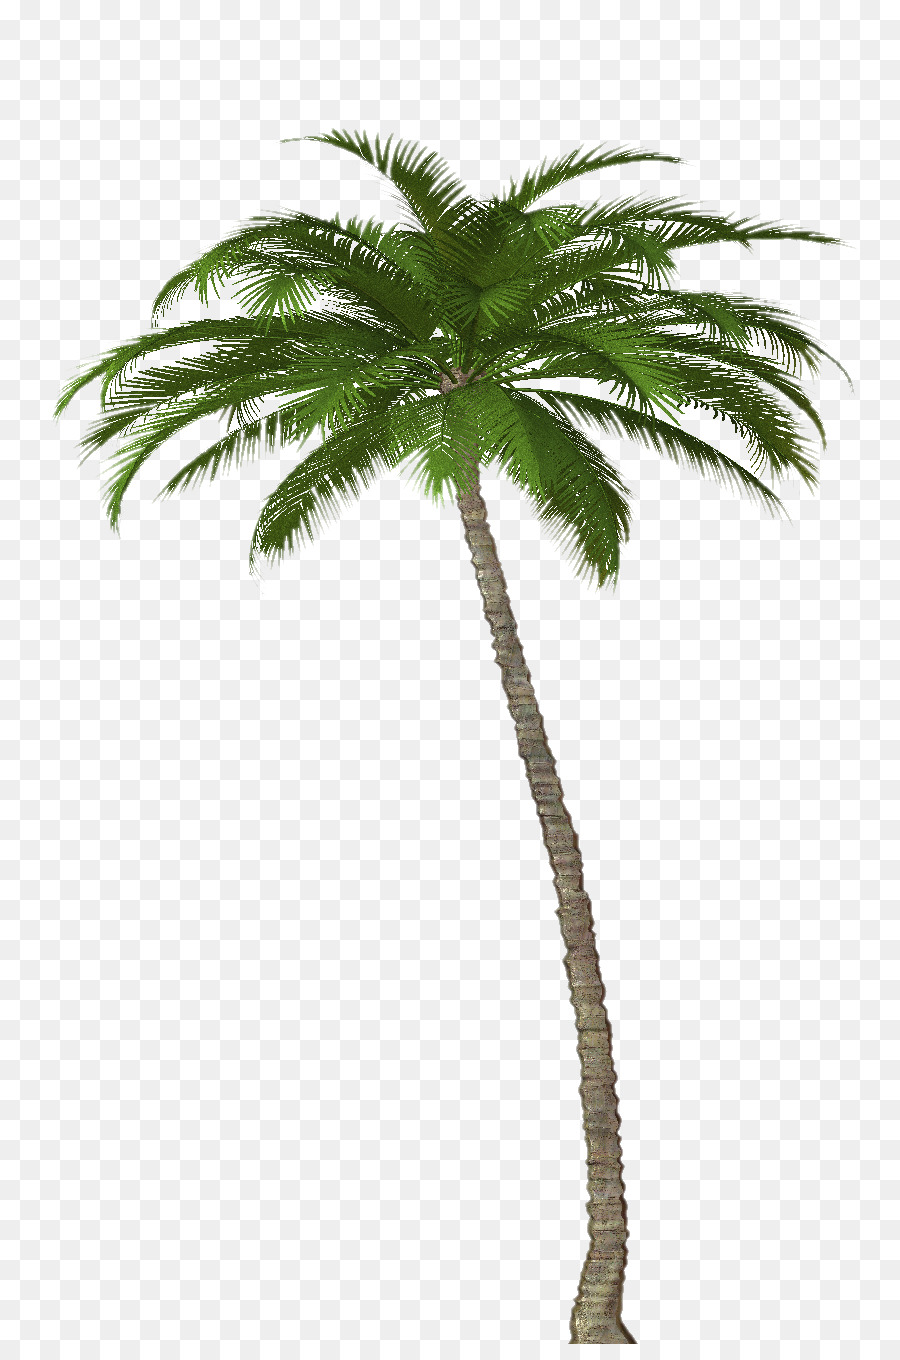 Palm Oil Tree Png Download 872 1344 Free Transparent Attalea Speciosa Png Download Cleanpng Kisspng Reproduction and growth attalea speciosa is monoecious—male and female flowers are separate, but are borne by the same plant. palm oil tree png download 872 1344